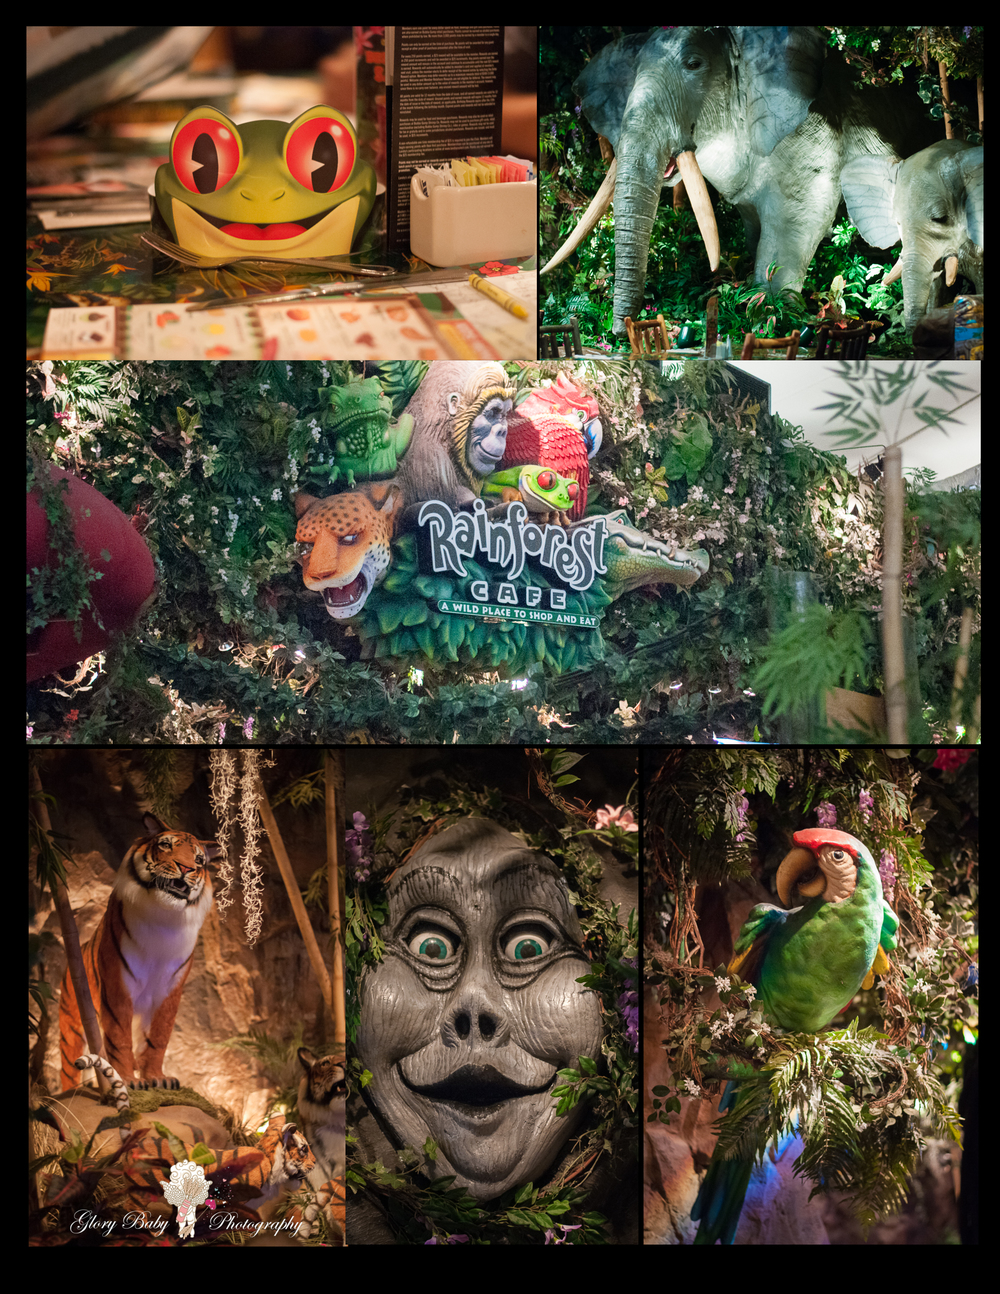 rainforest2015.jpg